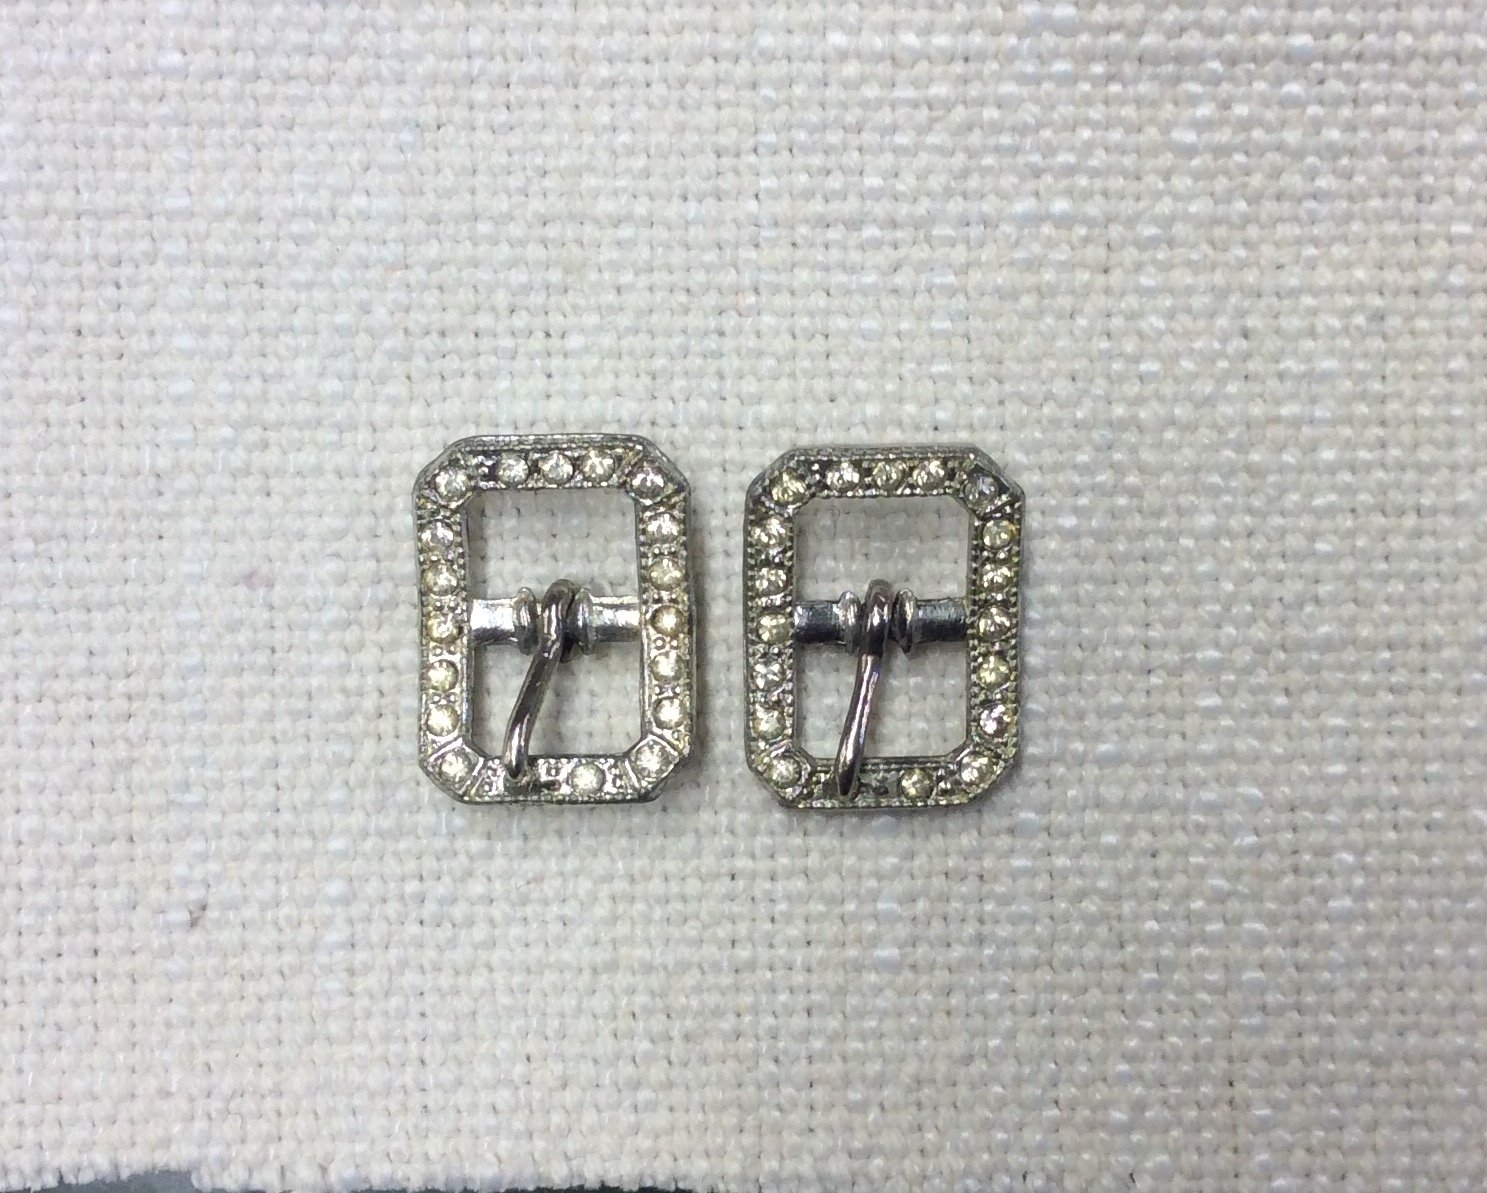 Antique French Rhinestone Paste Buckles Sold as the PairJGBT3